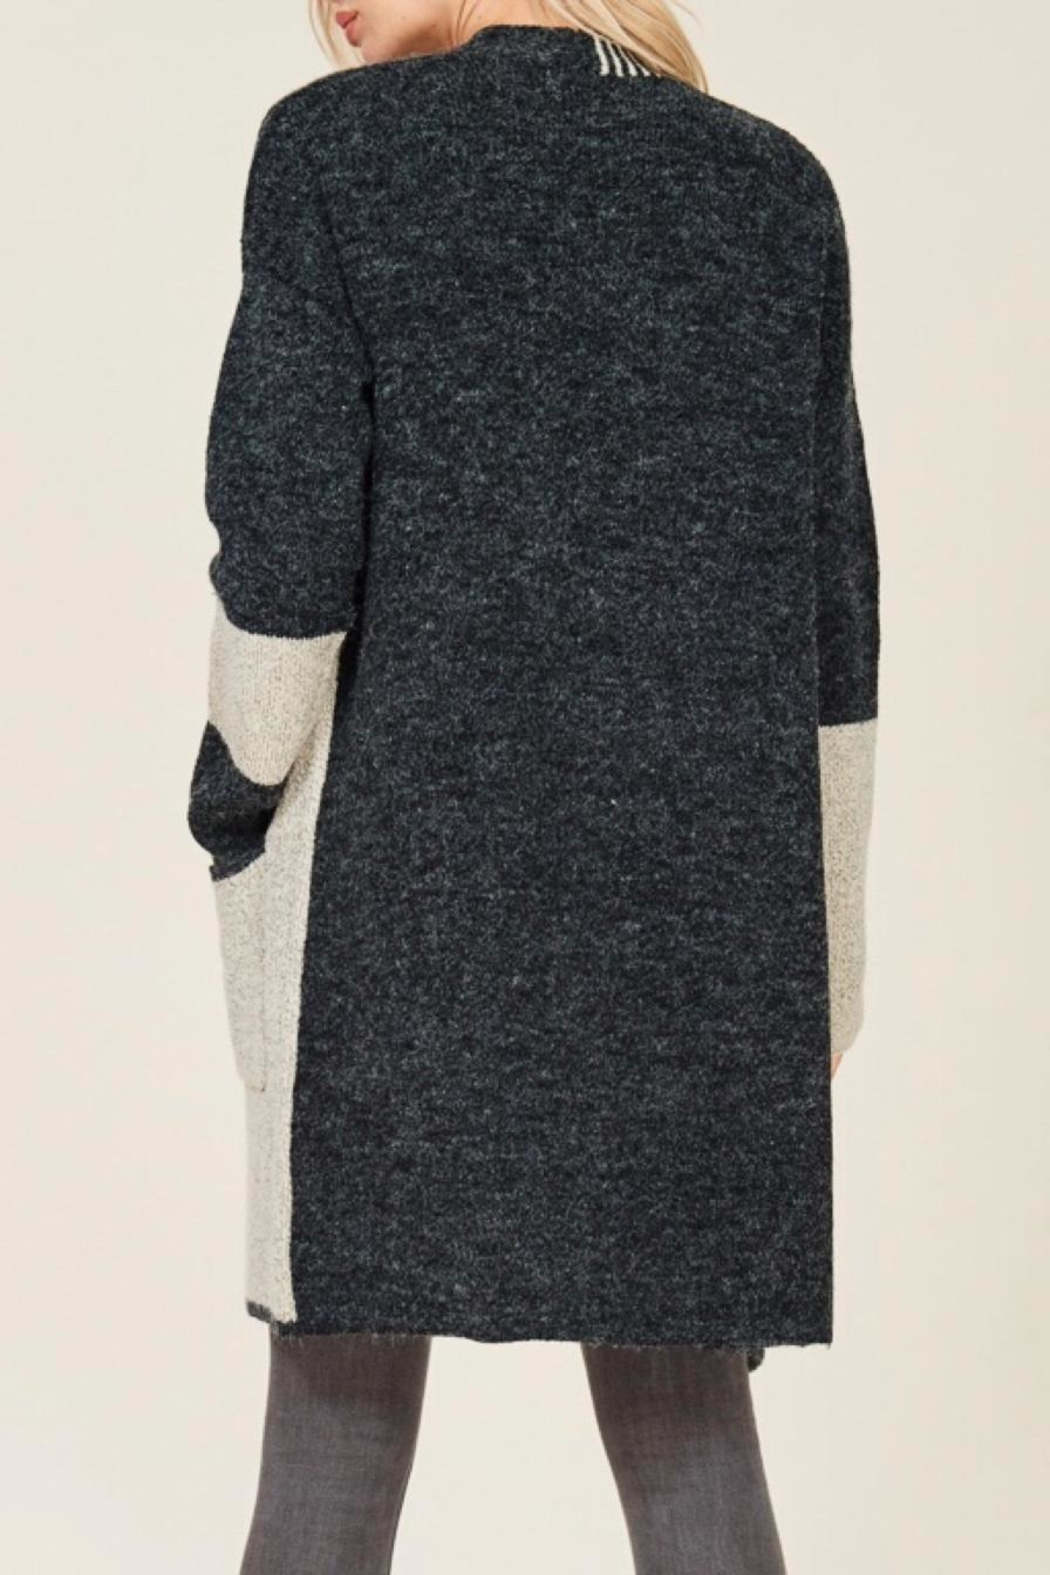 LuLu's Boutique Cozy Cardigan - Side Cropped Image